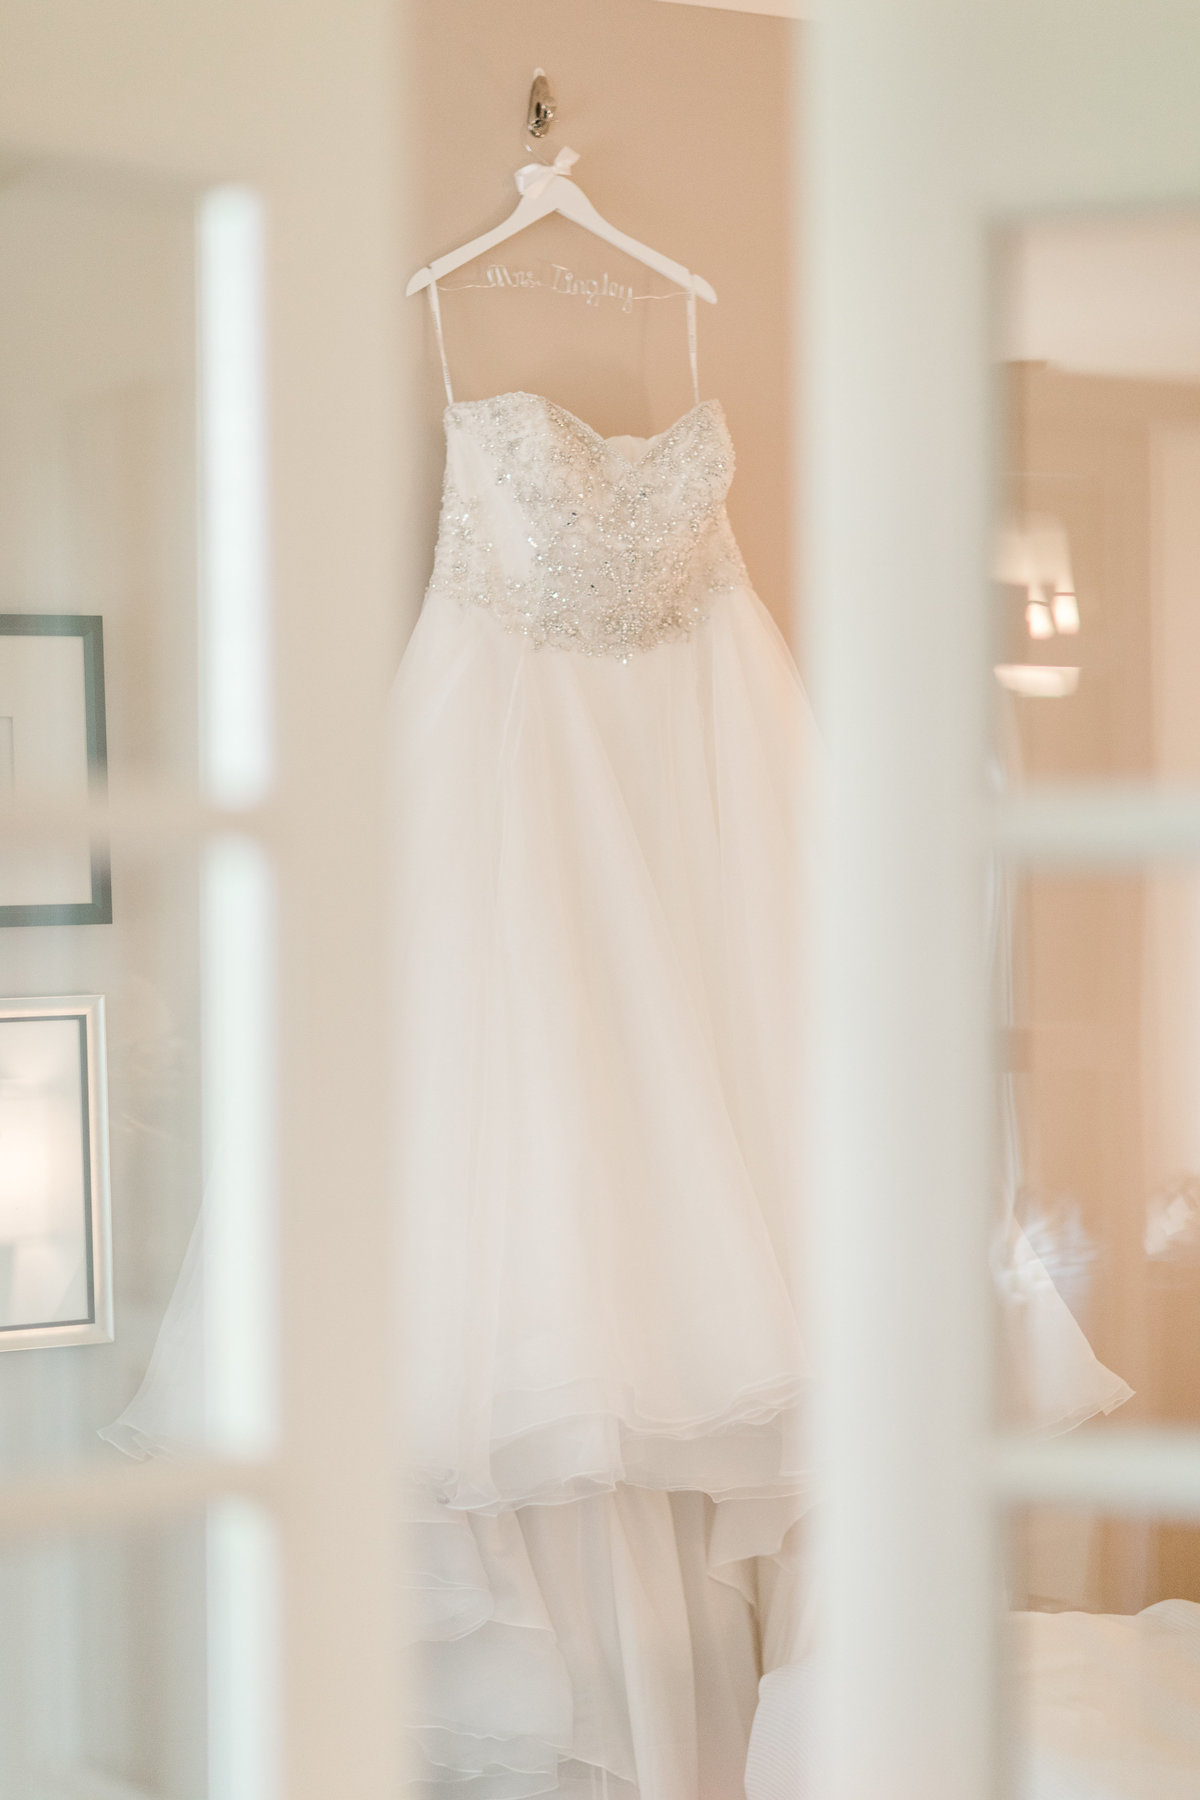 Alderbrook Resort and Spa Dress in Bridal Suite